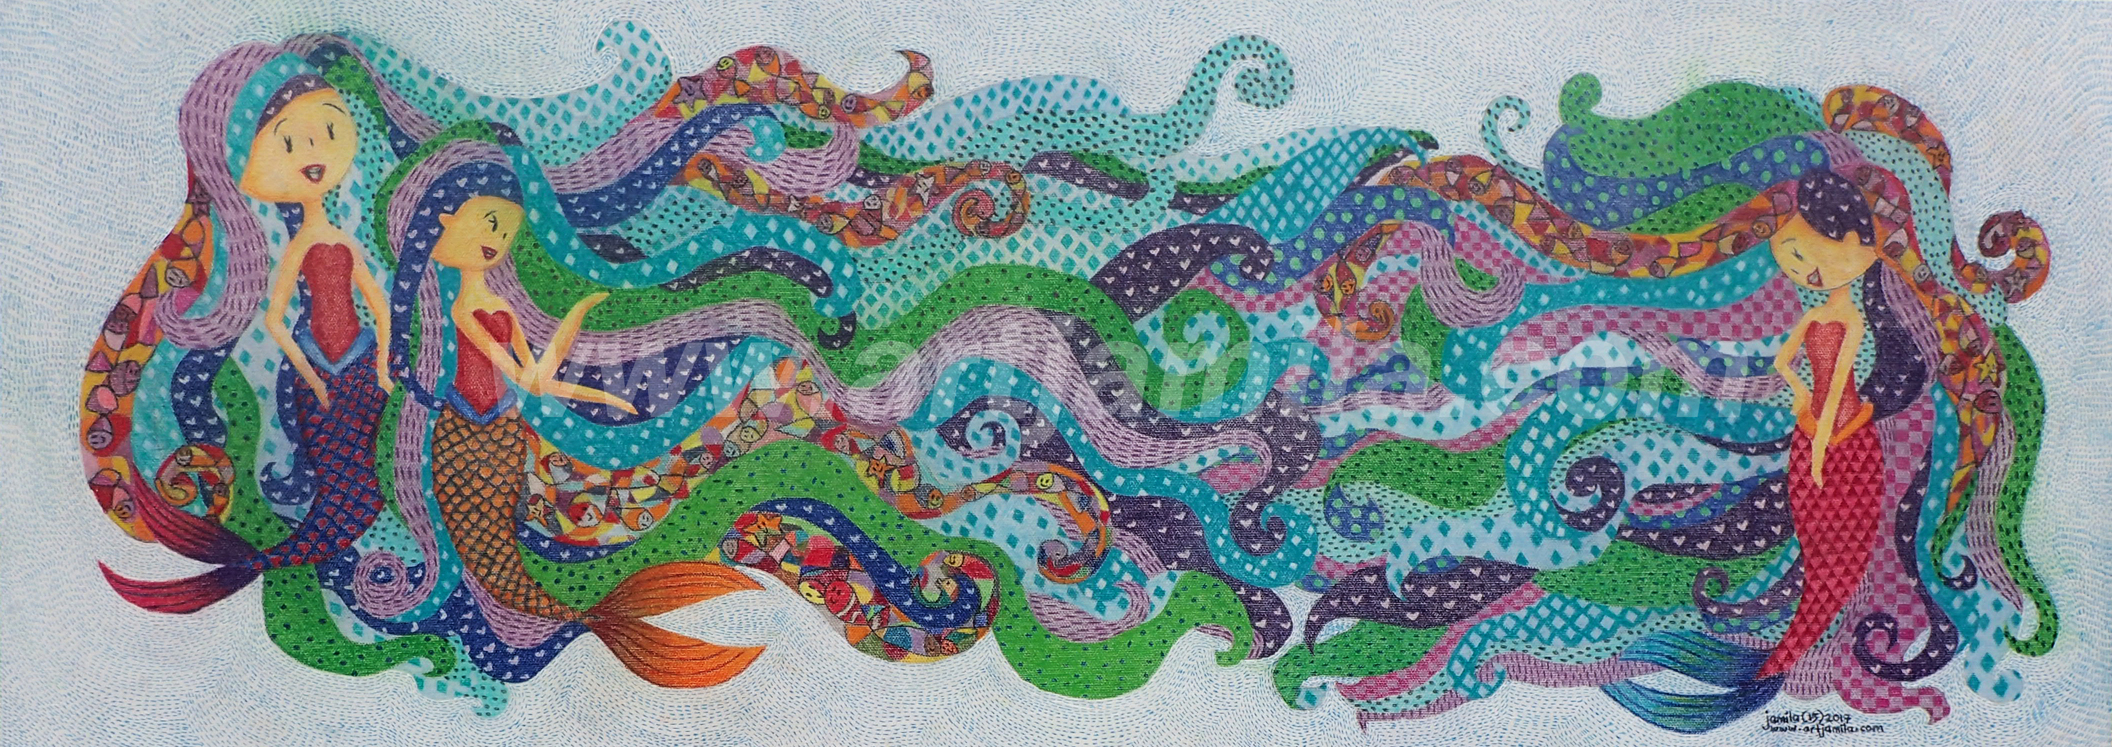 Mermaids Series 2